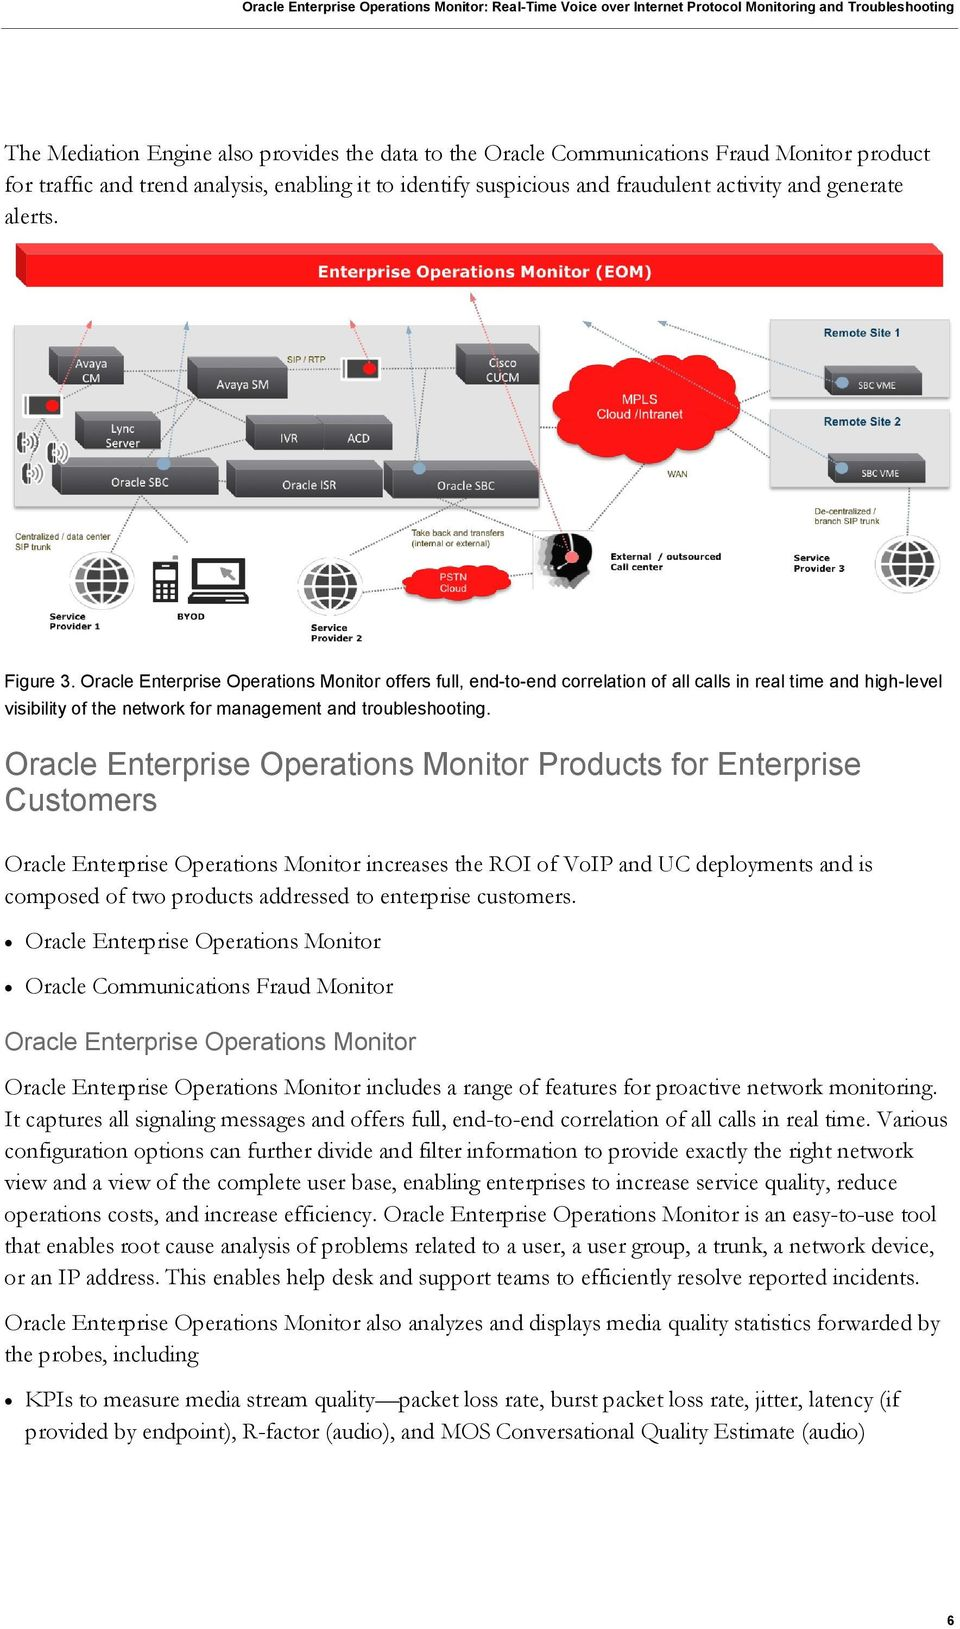 Oracle Enterprise Operations Monitor Products for Enterprise Customers Oracle Enterprise Operations Monitor increases the ROI of VoIP and UC deployments and is composed of two products addressed to